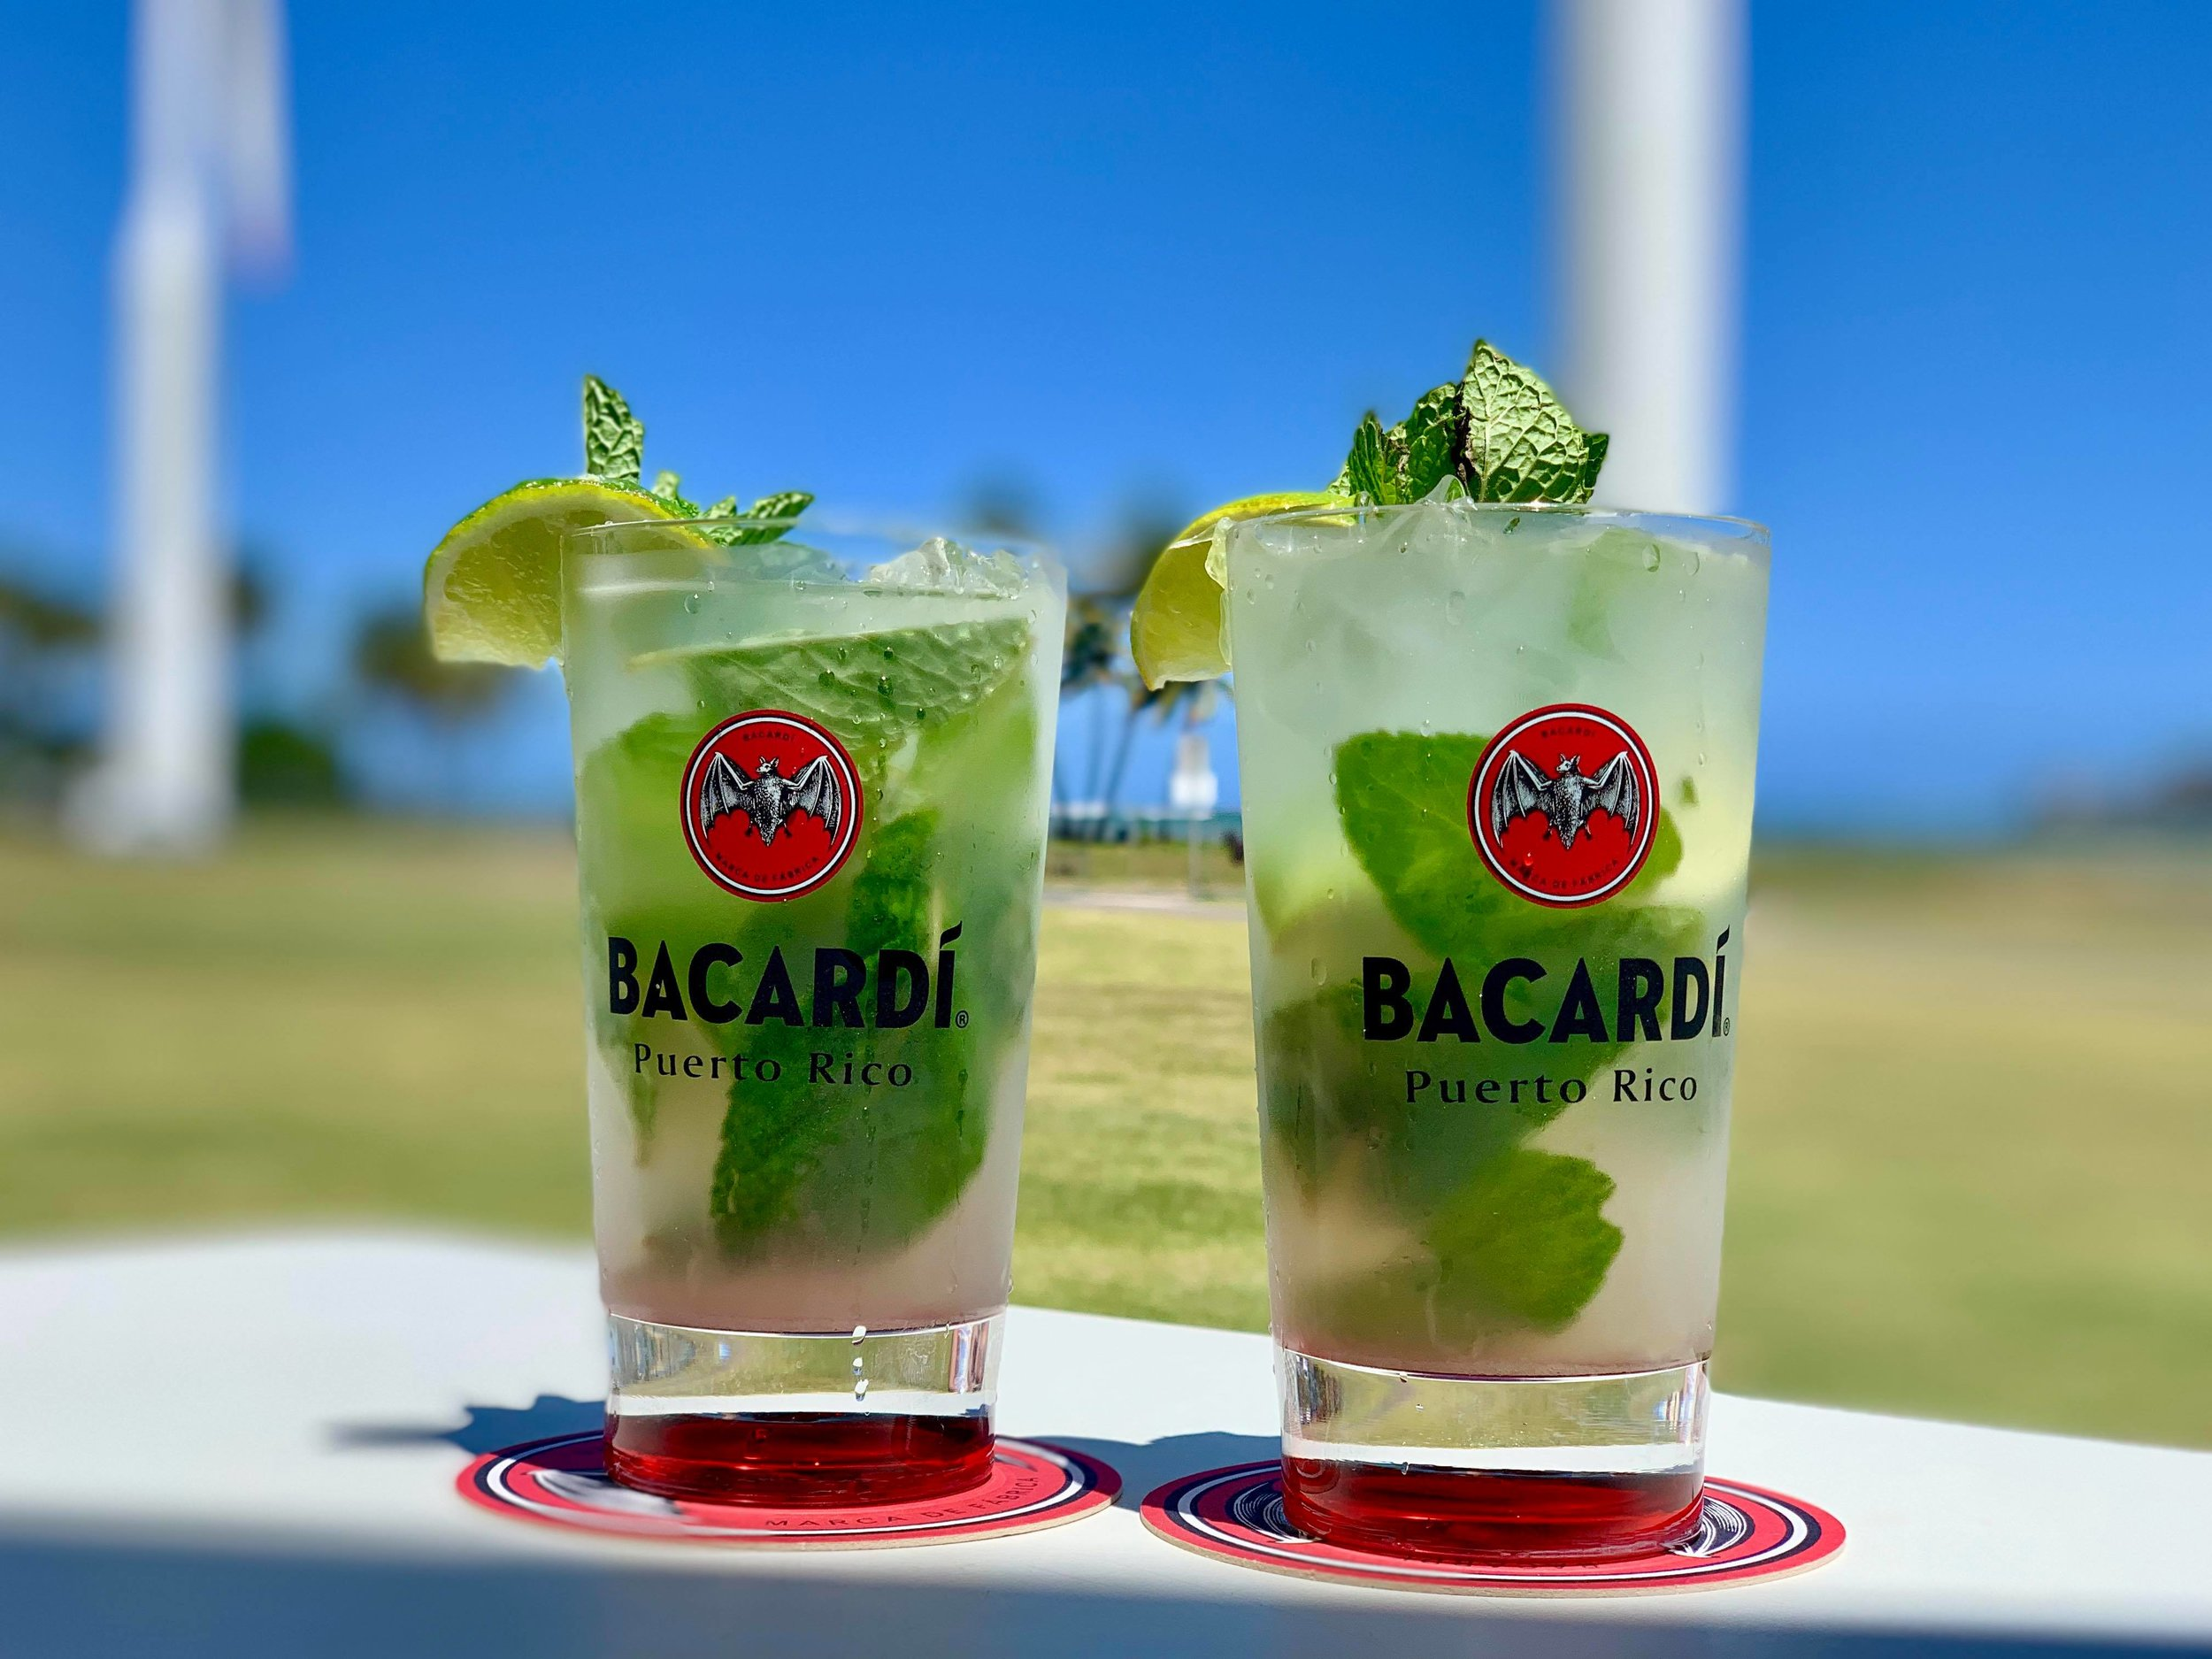 - What's a visit to a rum distillery without at least one mojito on the premises, right?